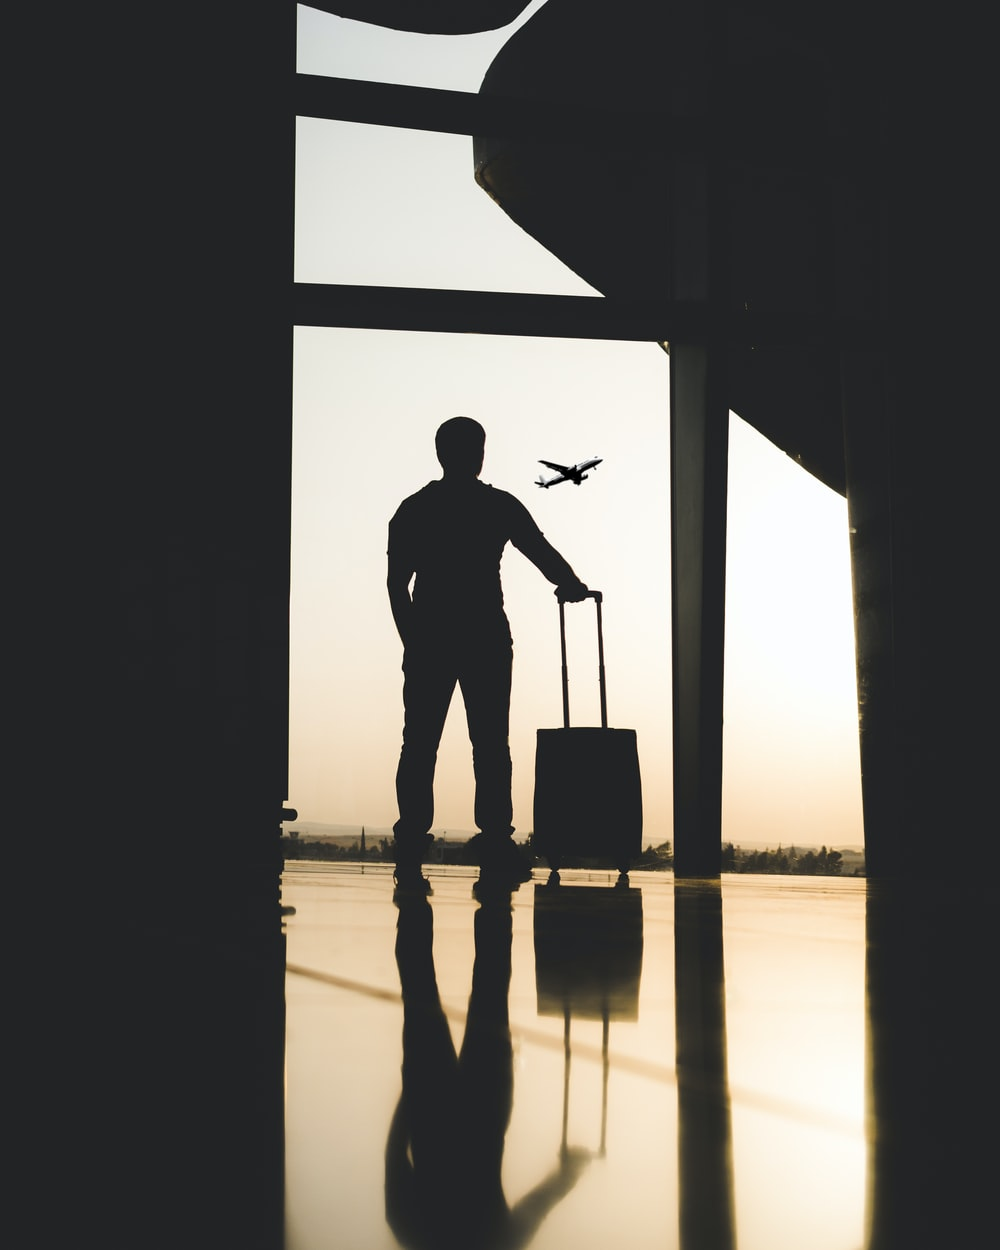 silhouette of man holding luggage inside airport